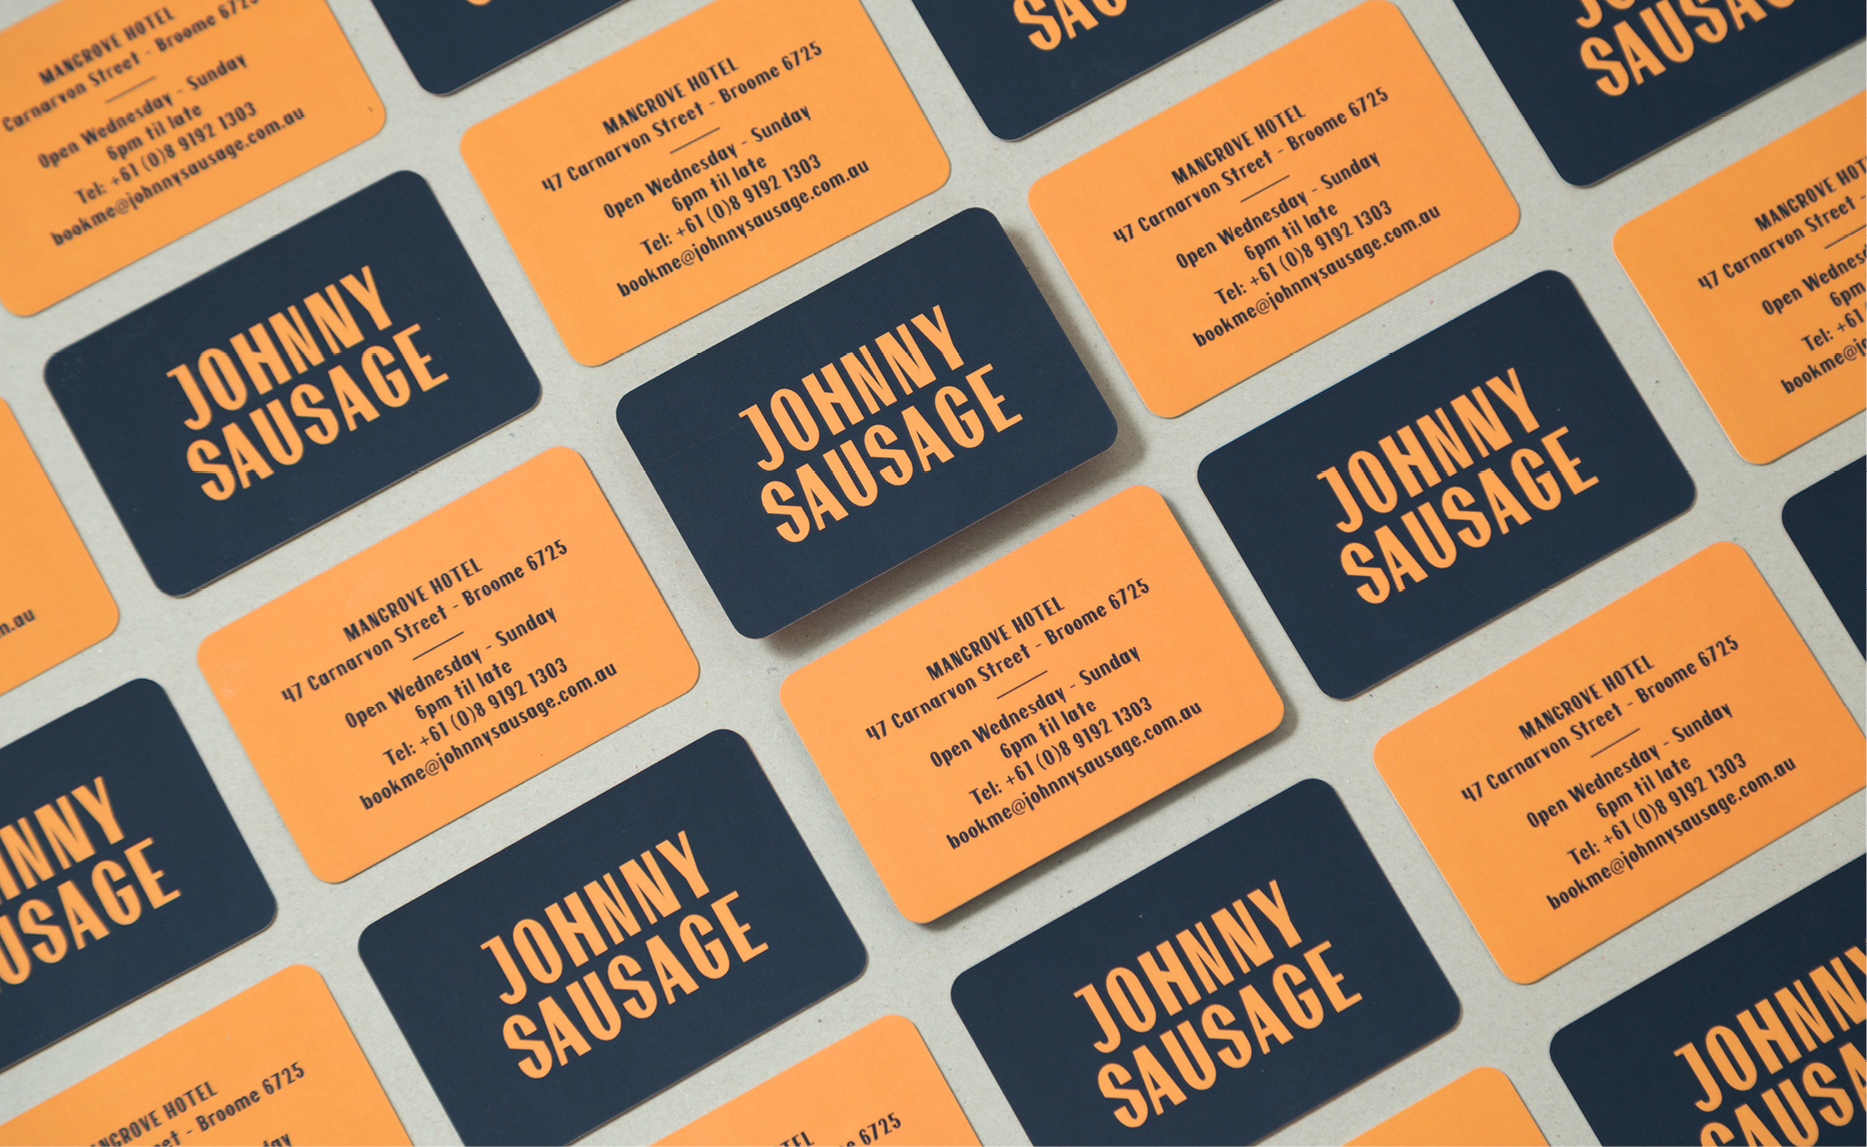 Johnny Sausage